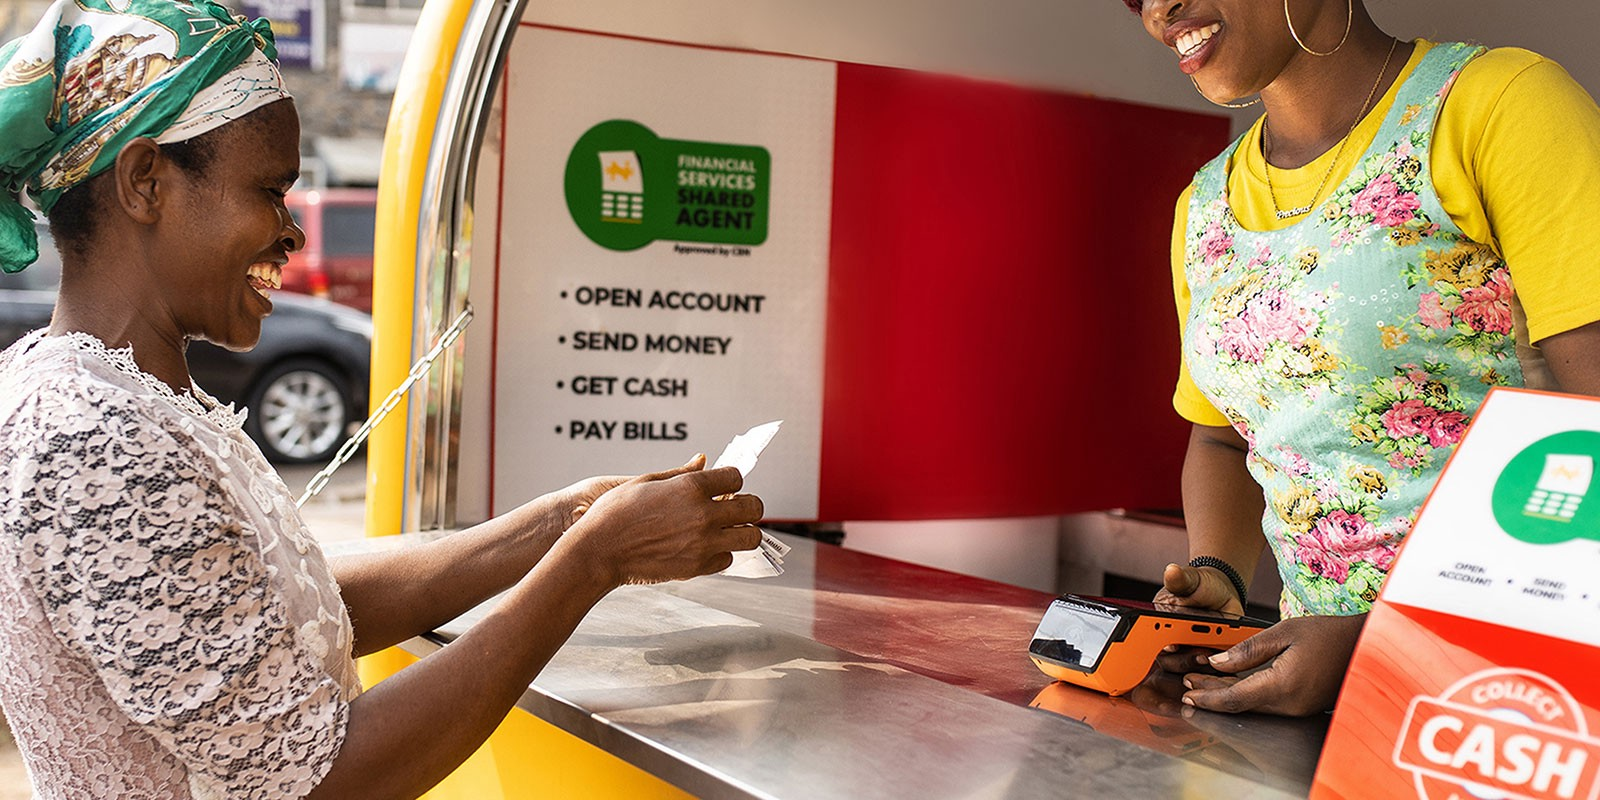 Mobile payments in Nigeria have grown 391% in 1 year | TechCabal